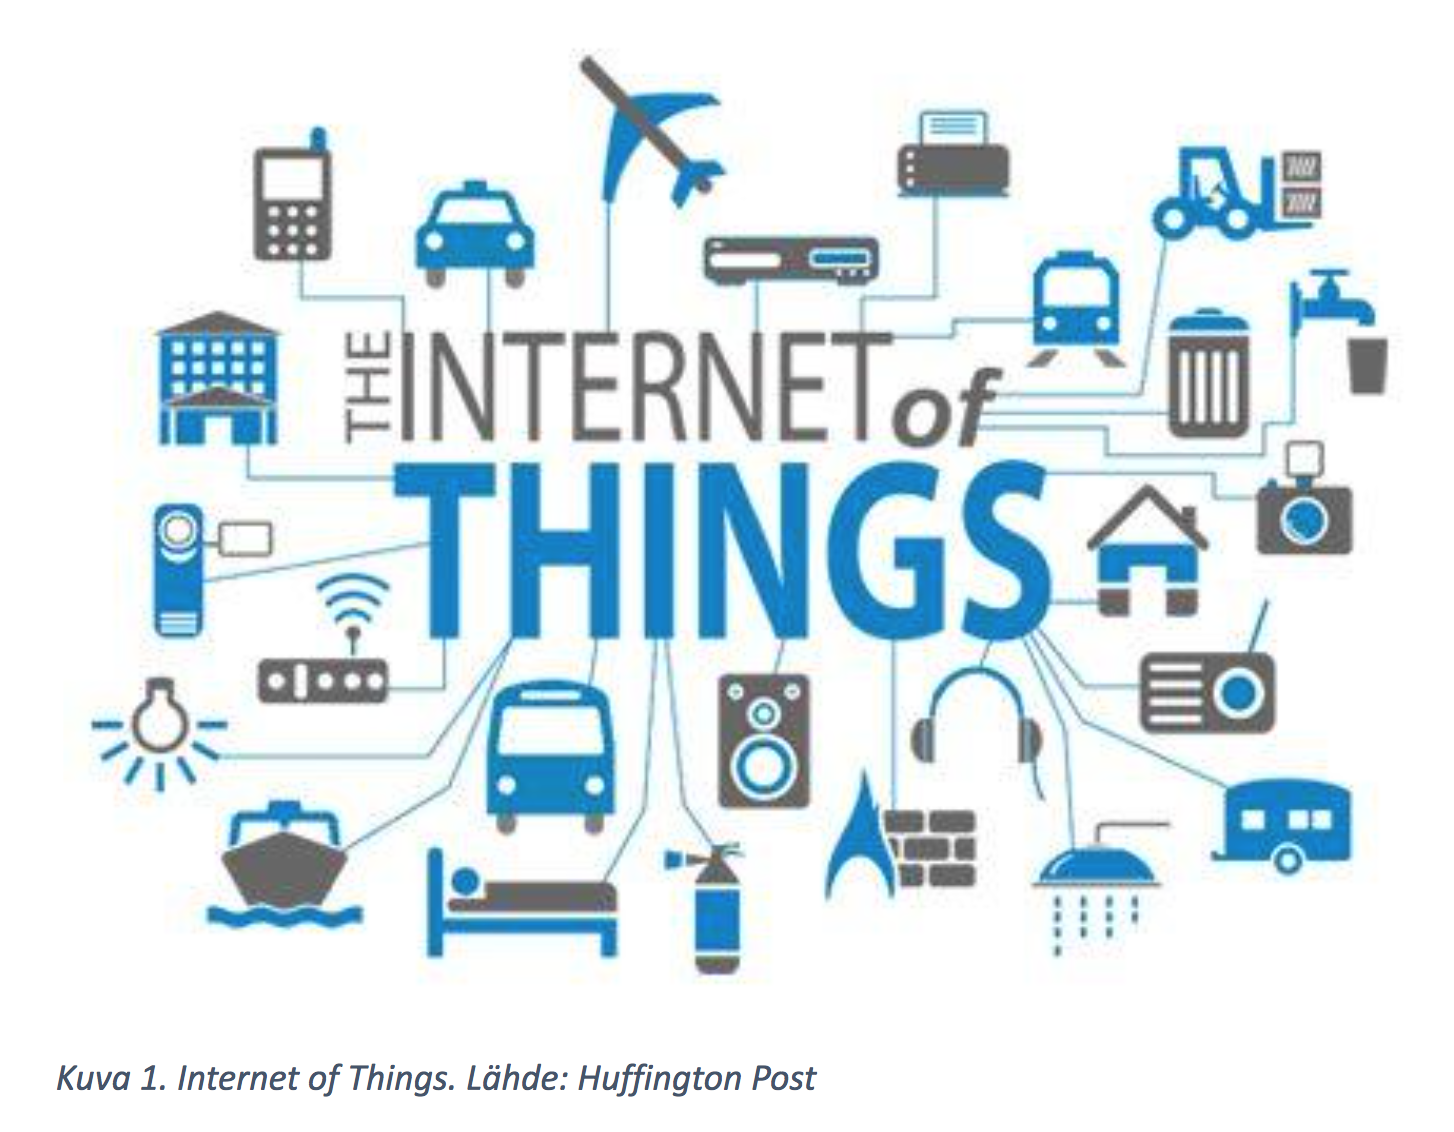 The Internet of Things.